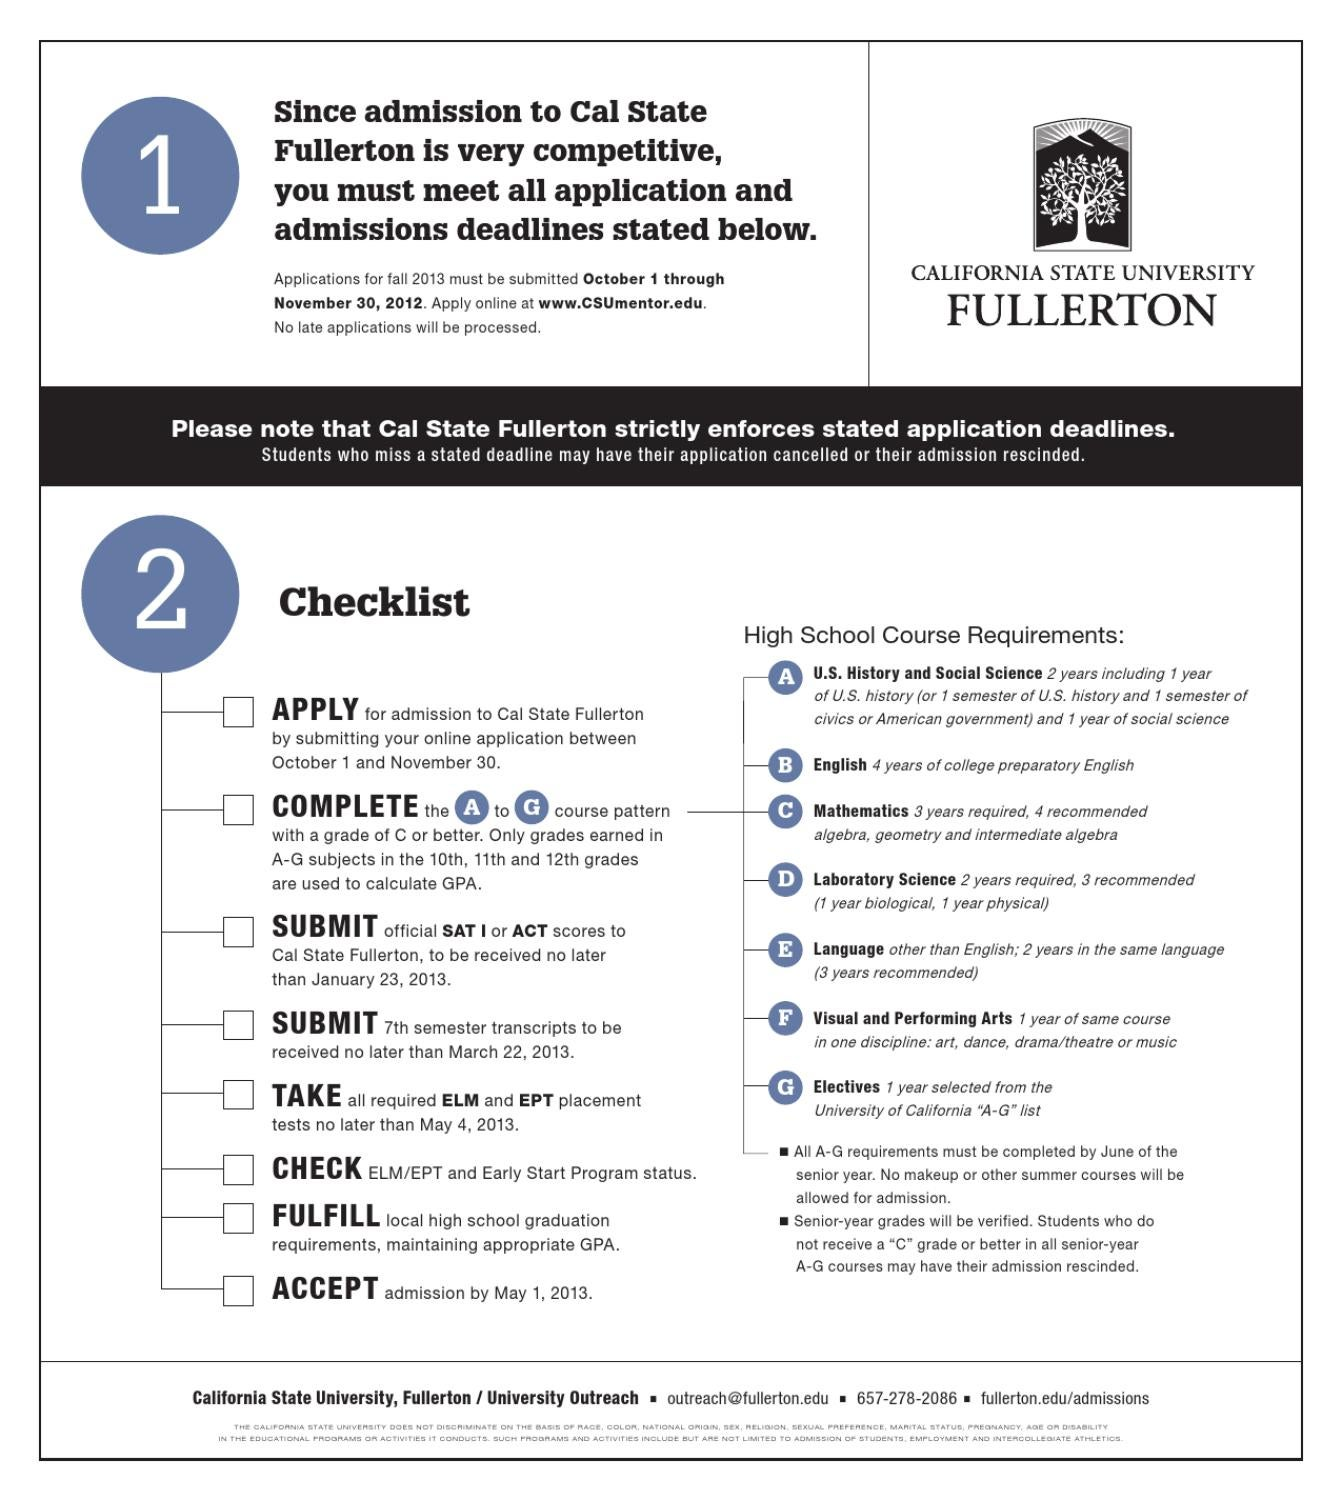 2012 csuf recruitment admission check list by howard chang issuu ccuart Image collections